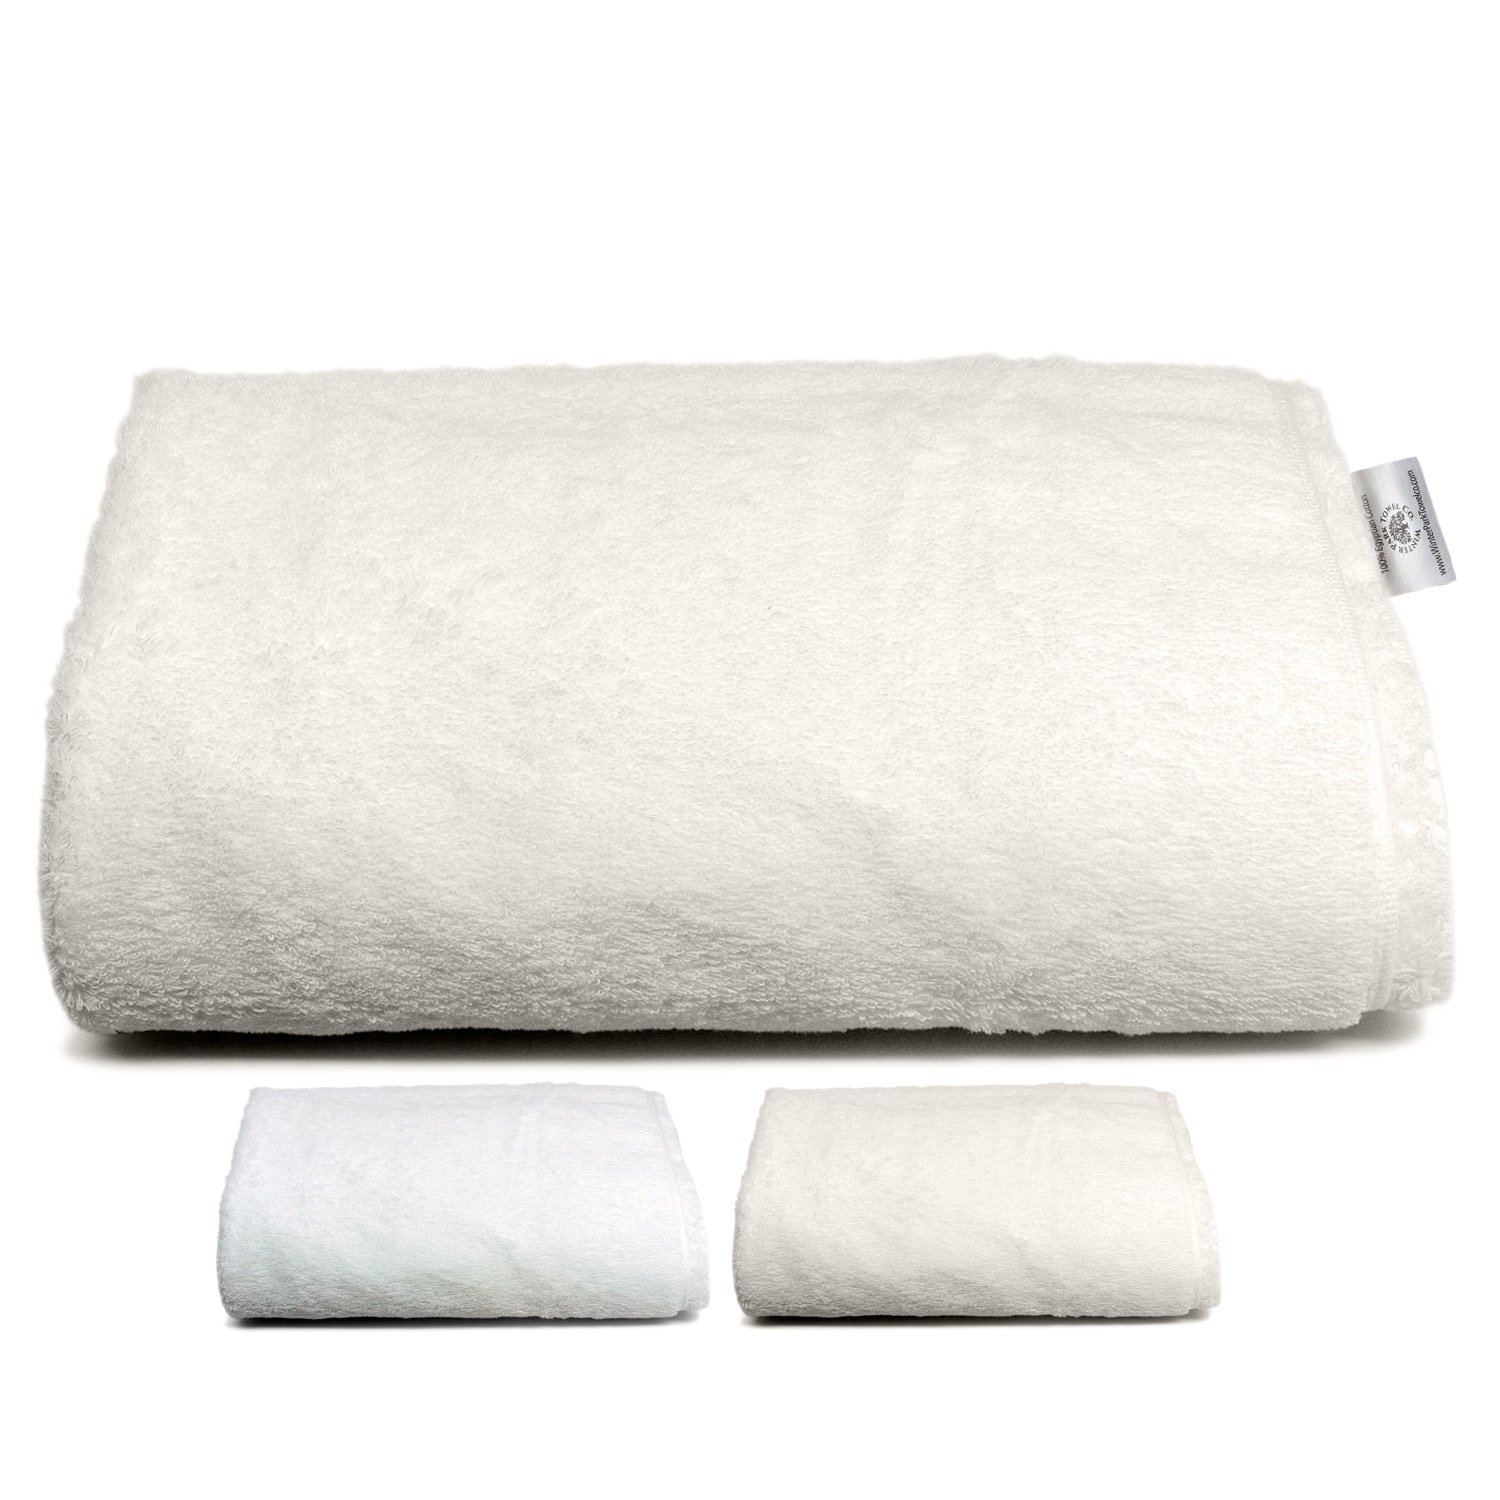 Oversized Luxury Ivory Bath Towels